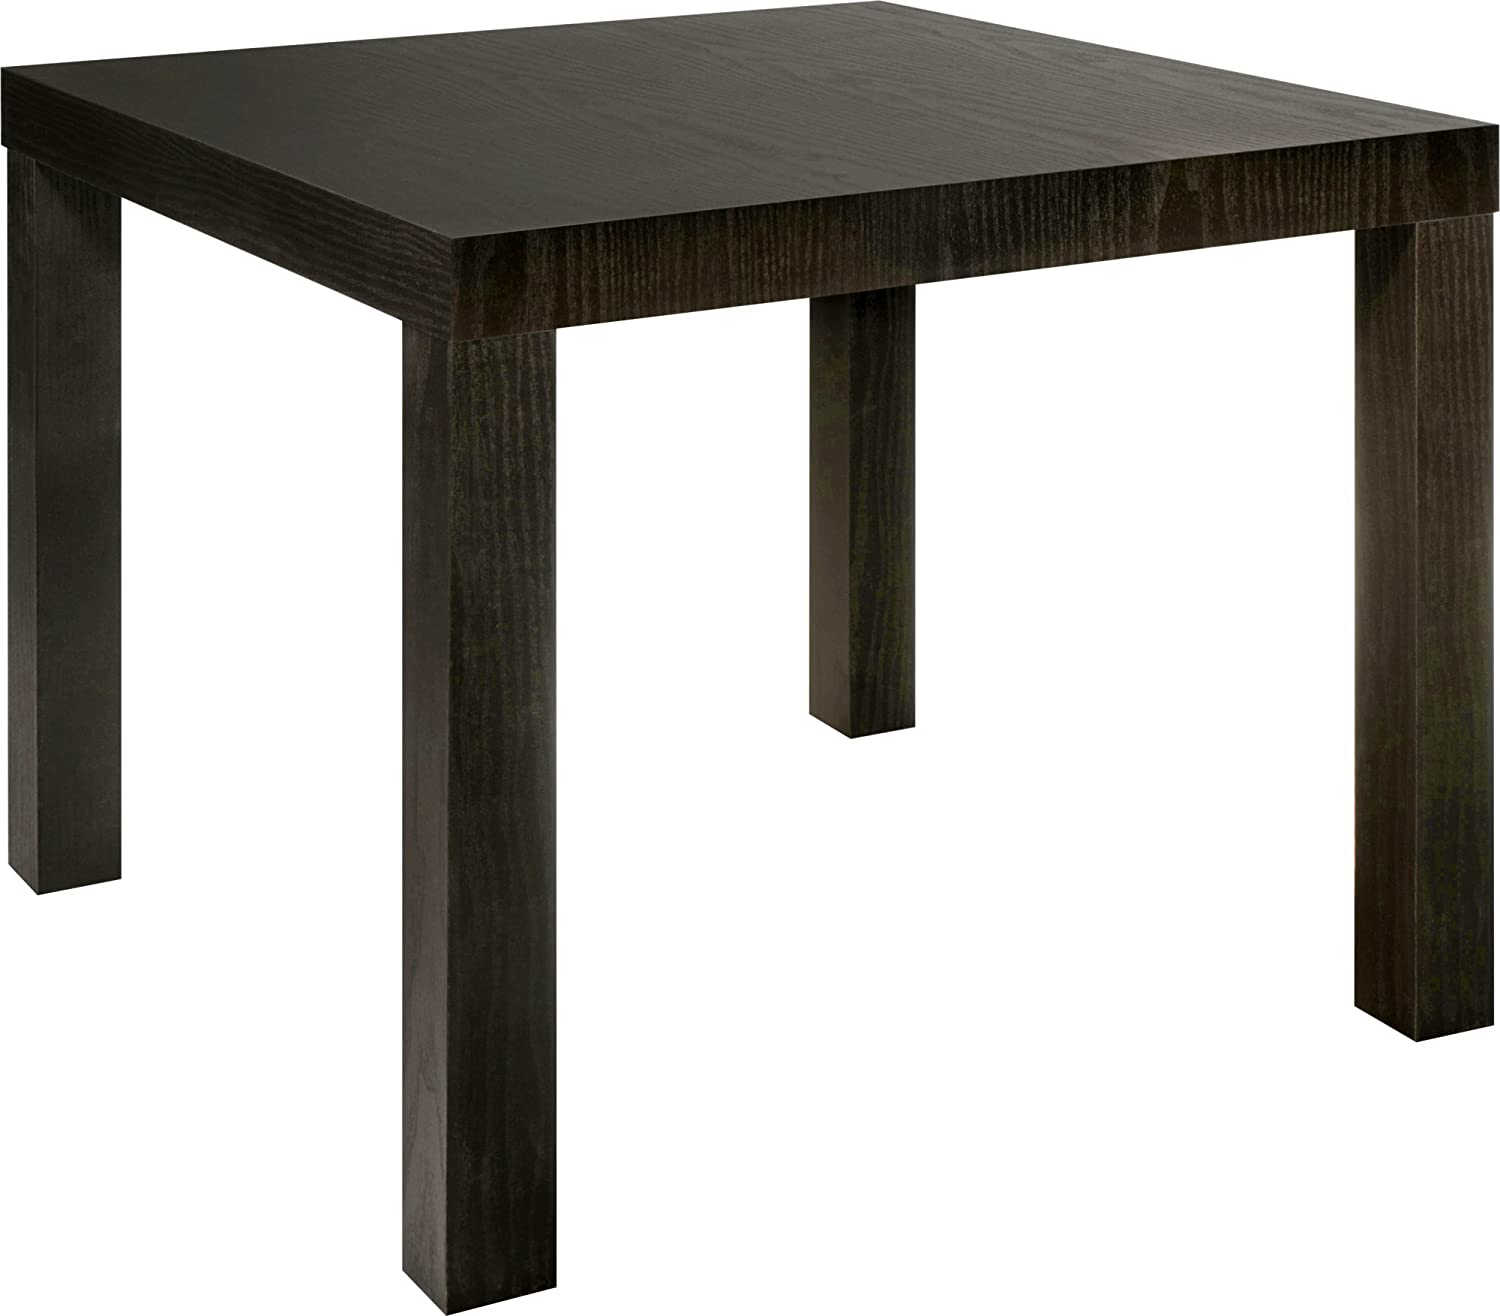 amazoncom dhp parsons modern end table black wood grain kitchen  dining. amazoncom dhp parsons modern end table black wood grain